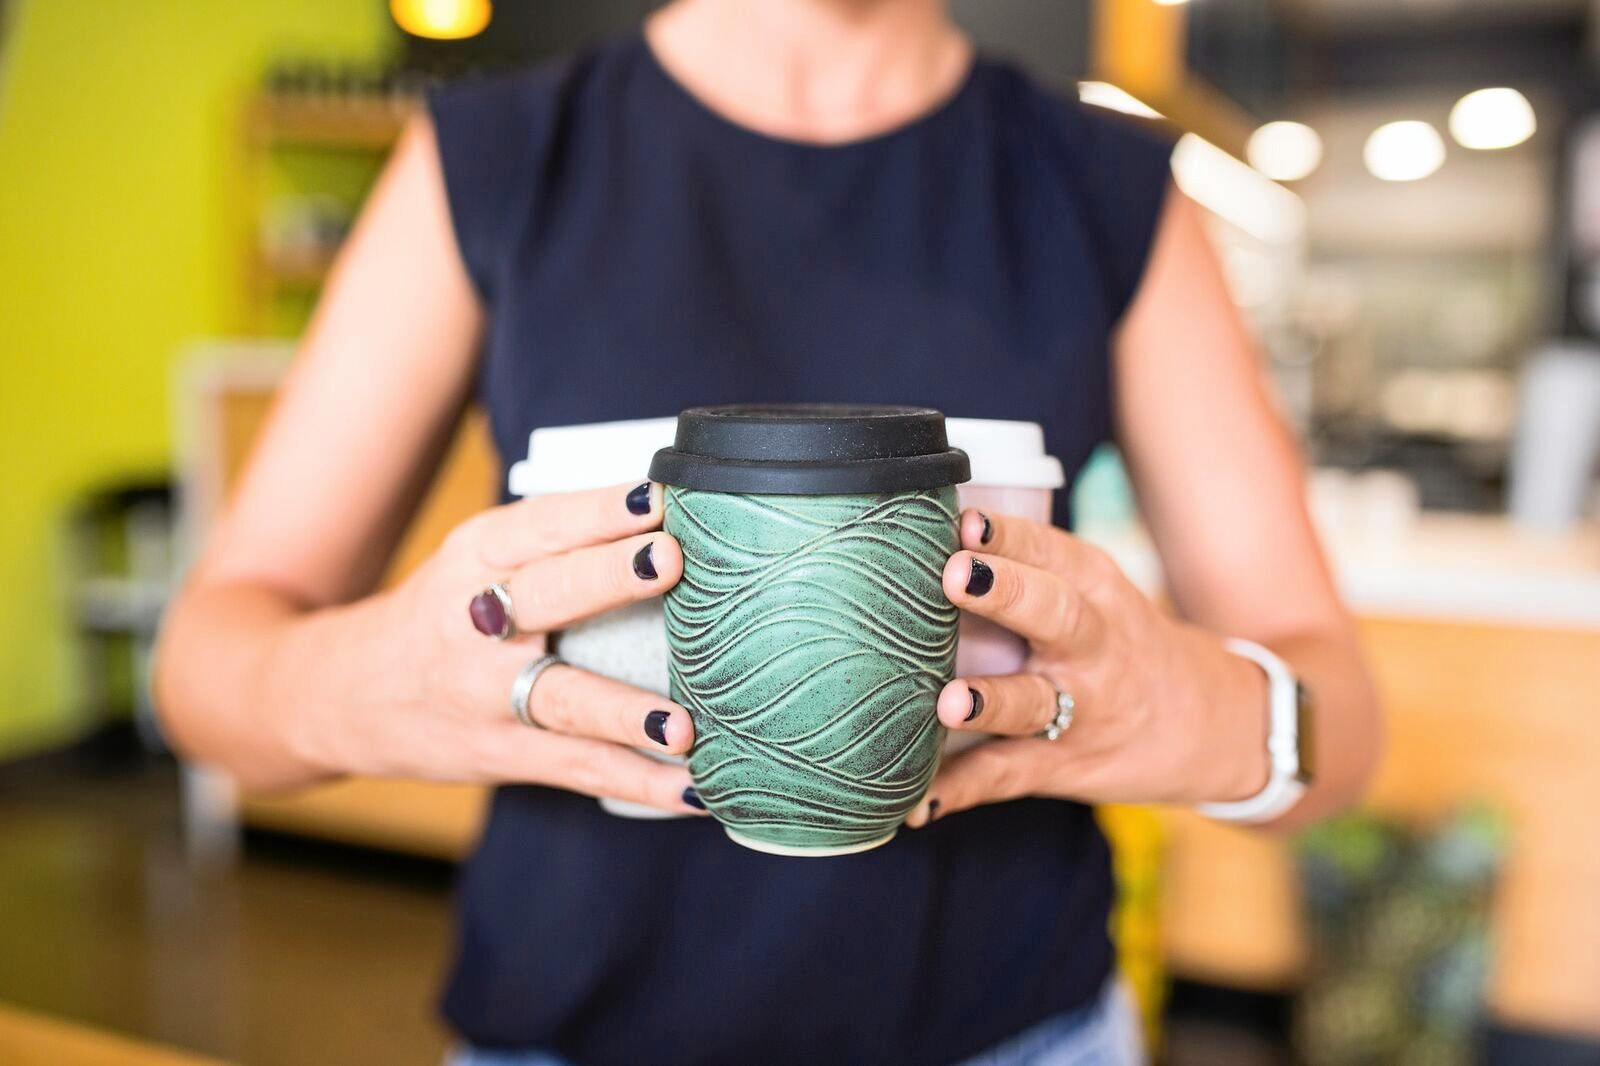 Raw Energy is working to improve sustainability across its cafes.